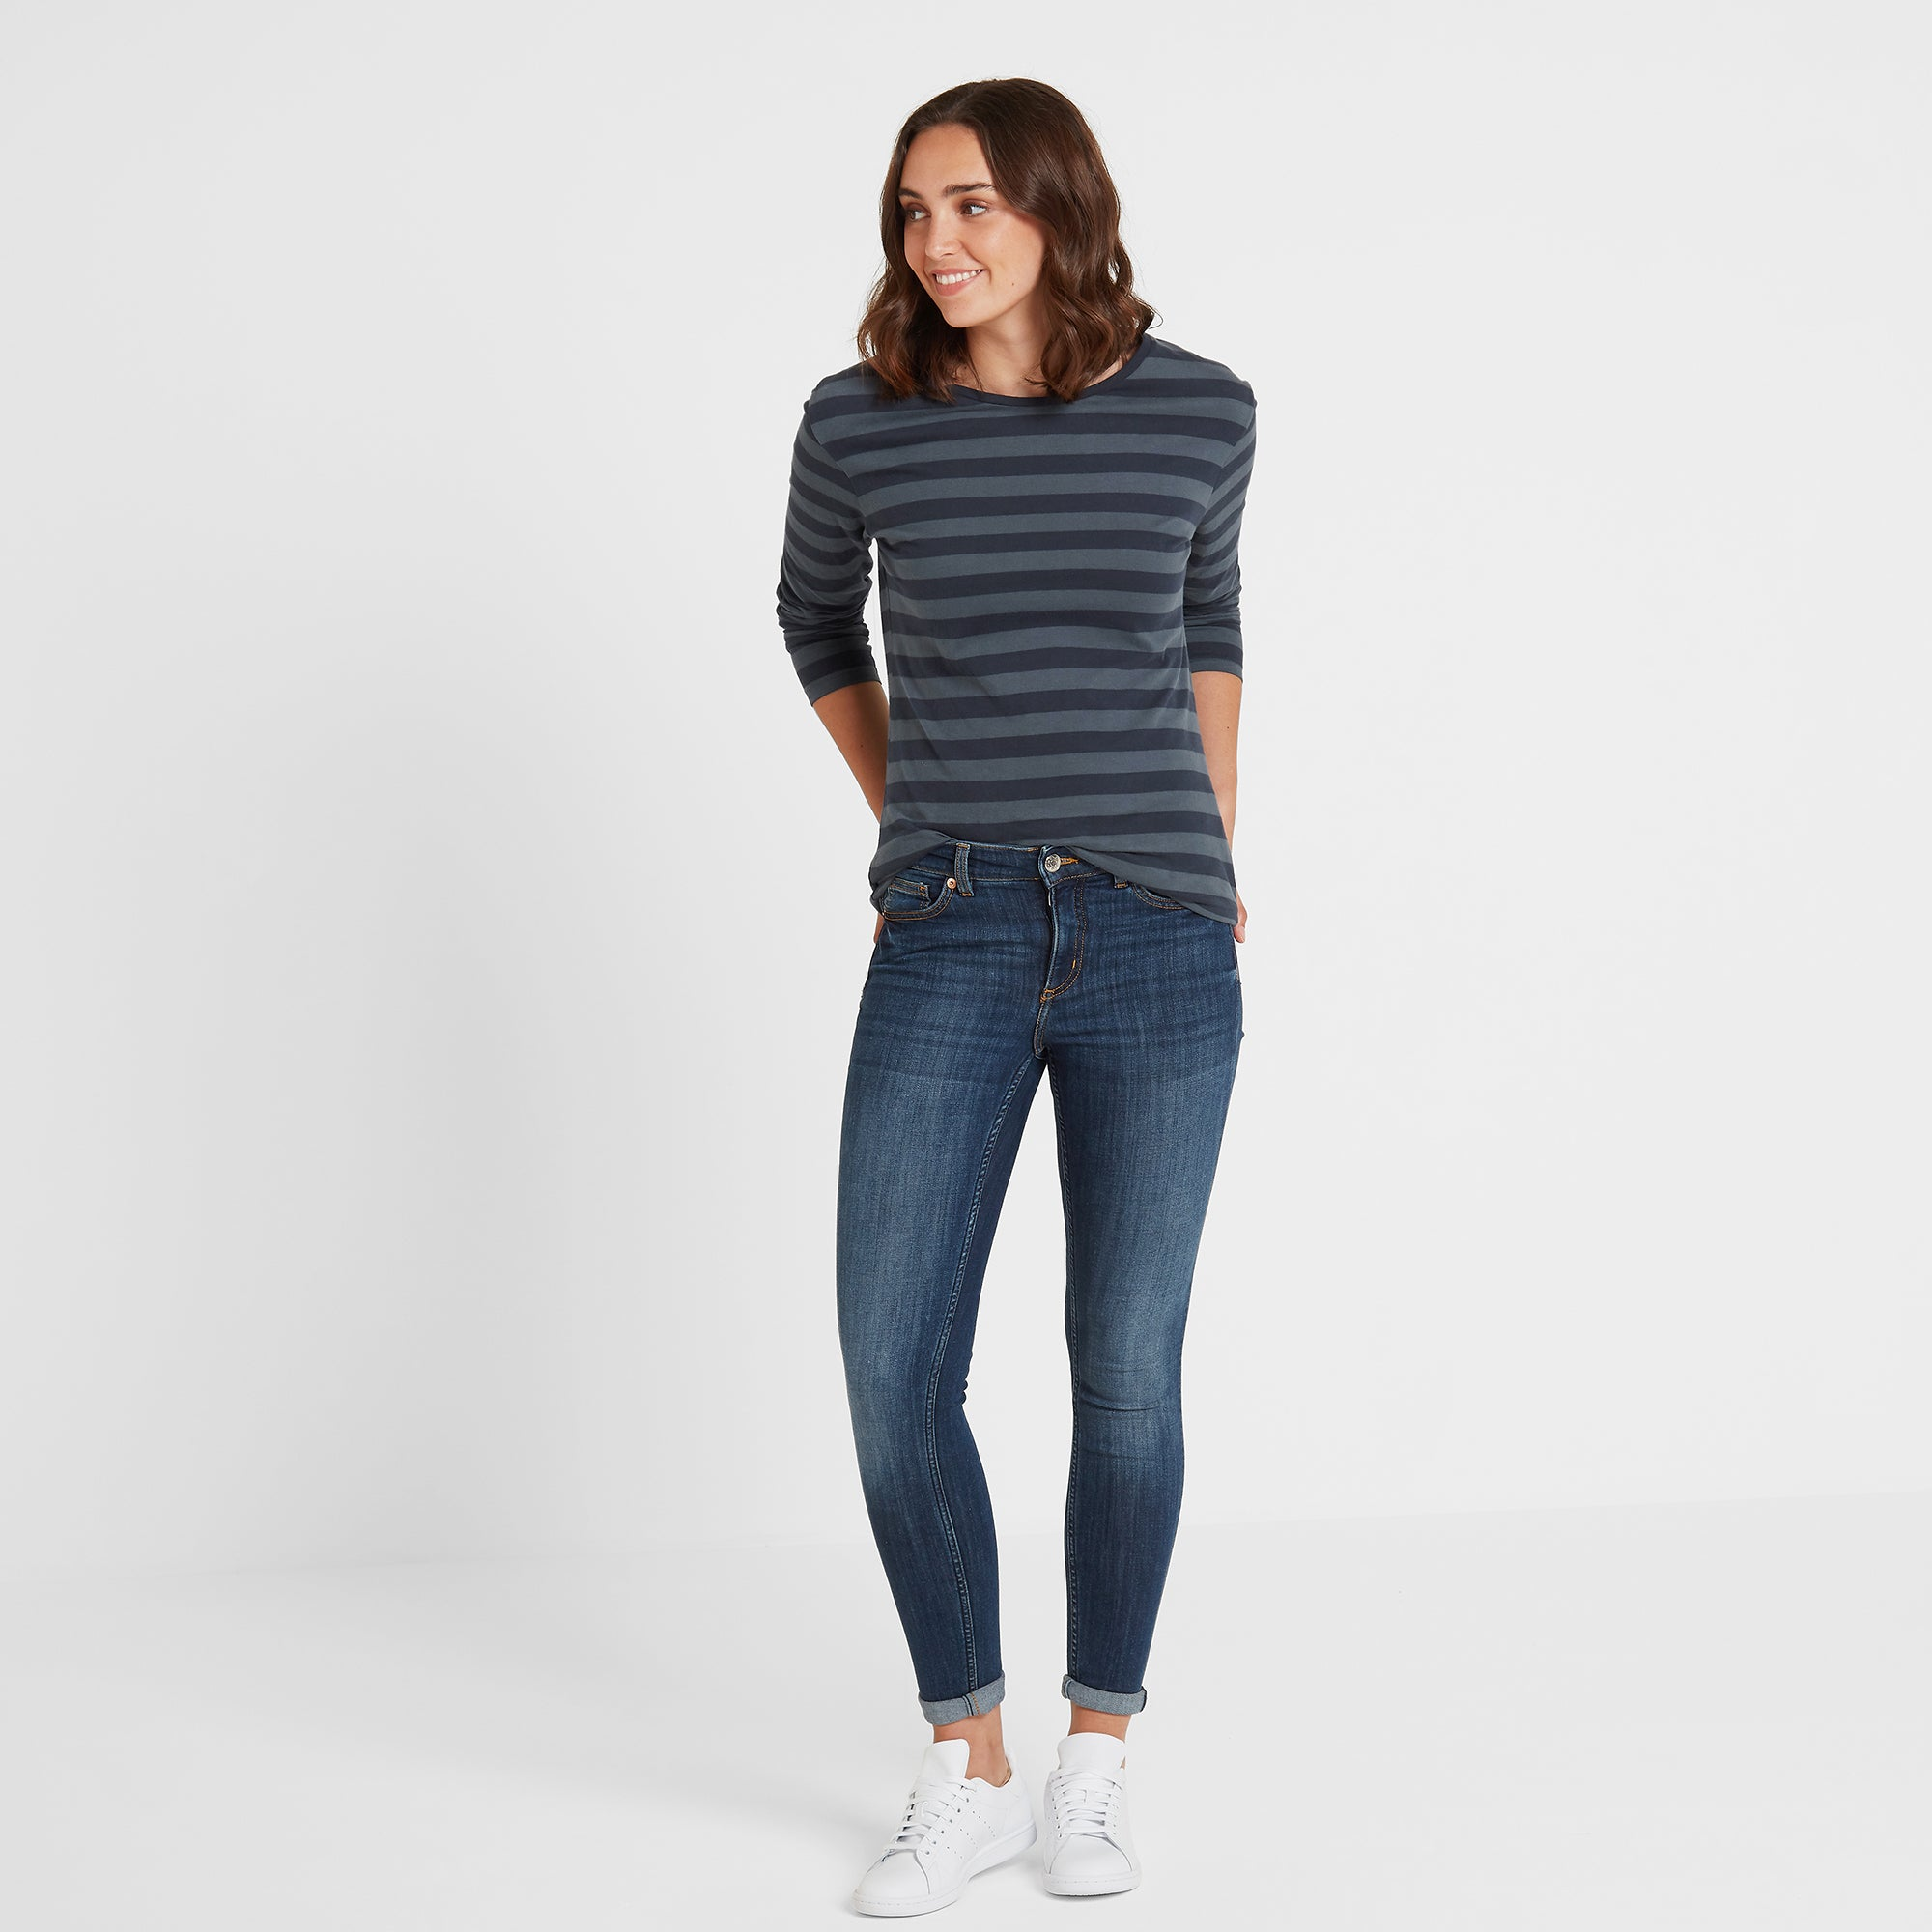 Sandsend Womens Long Sleeve Stripe T-Shirt - Dark Indigo